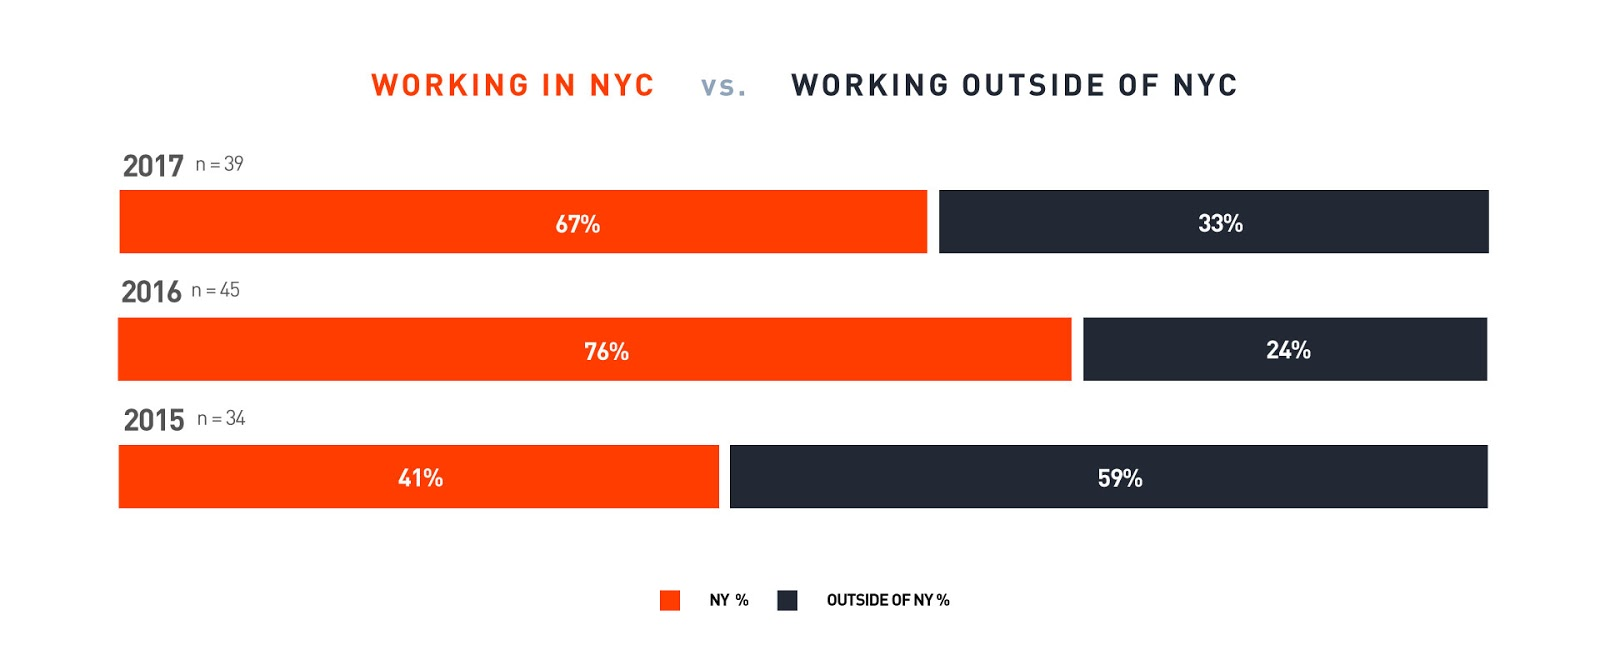 "Bar-graph, ""Post Graduation Location"", (2015-2017). (2015) 41% worked in NYC and 59% worked elsewhere, (2016) 76% worked in NYC and 24% worked elsewhere, (2017) 67% worked in NYC and 33% did not."